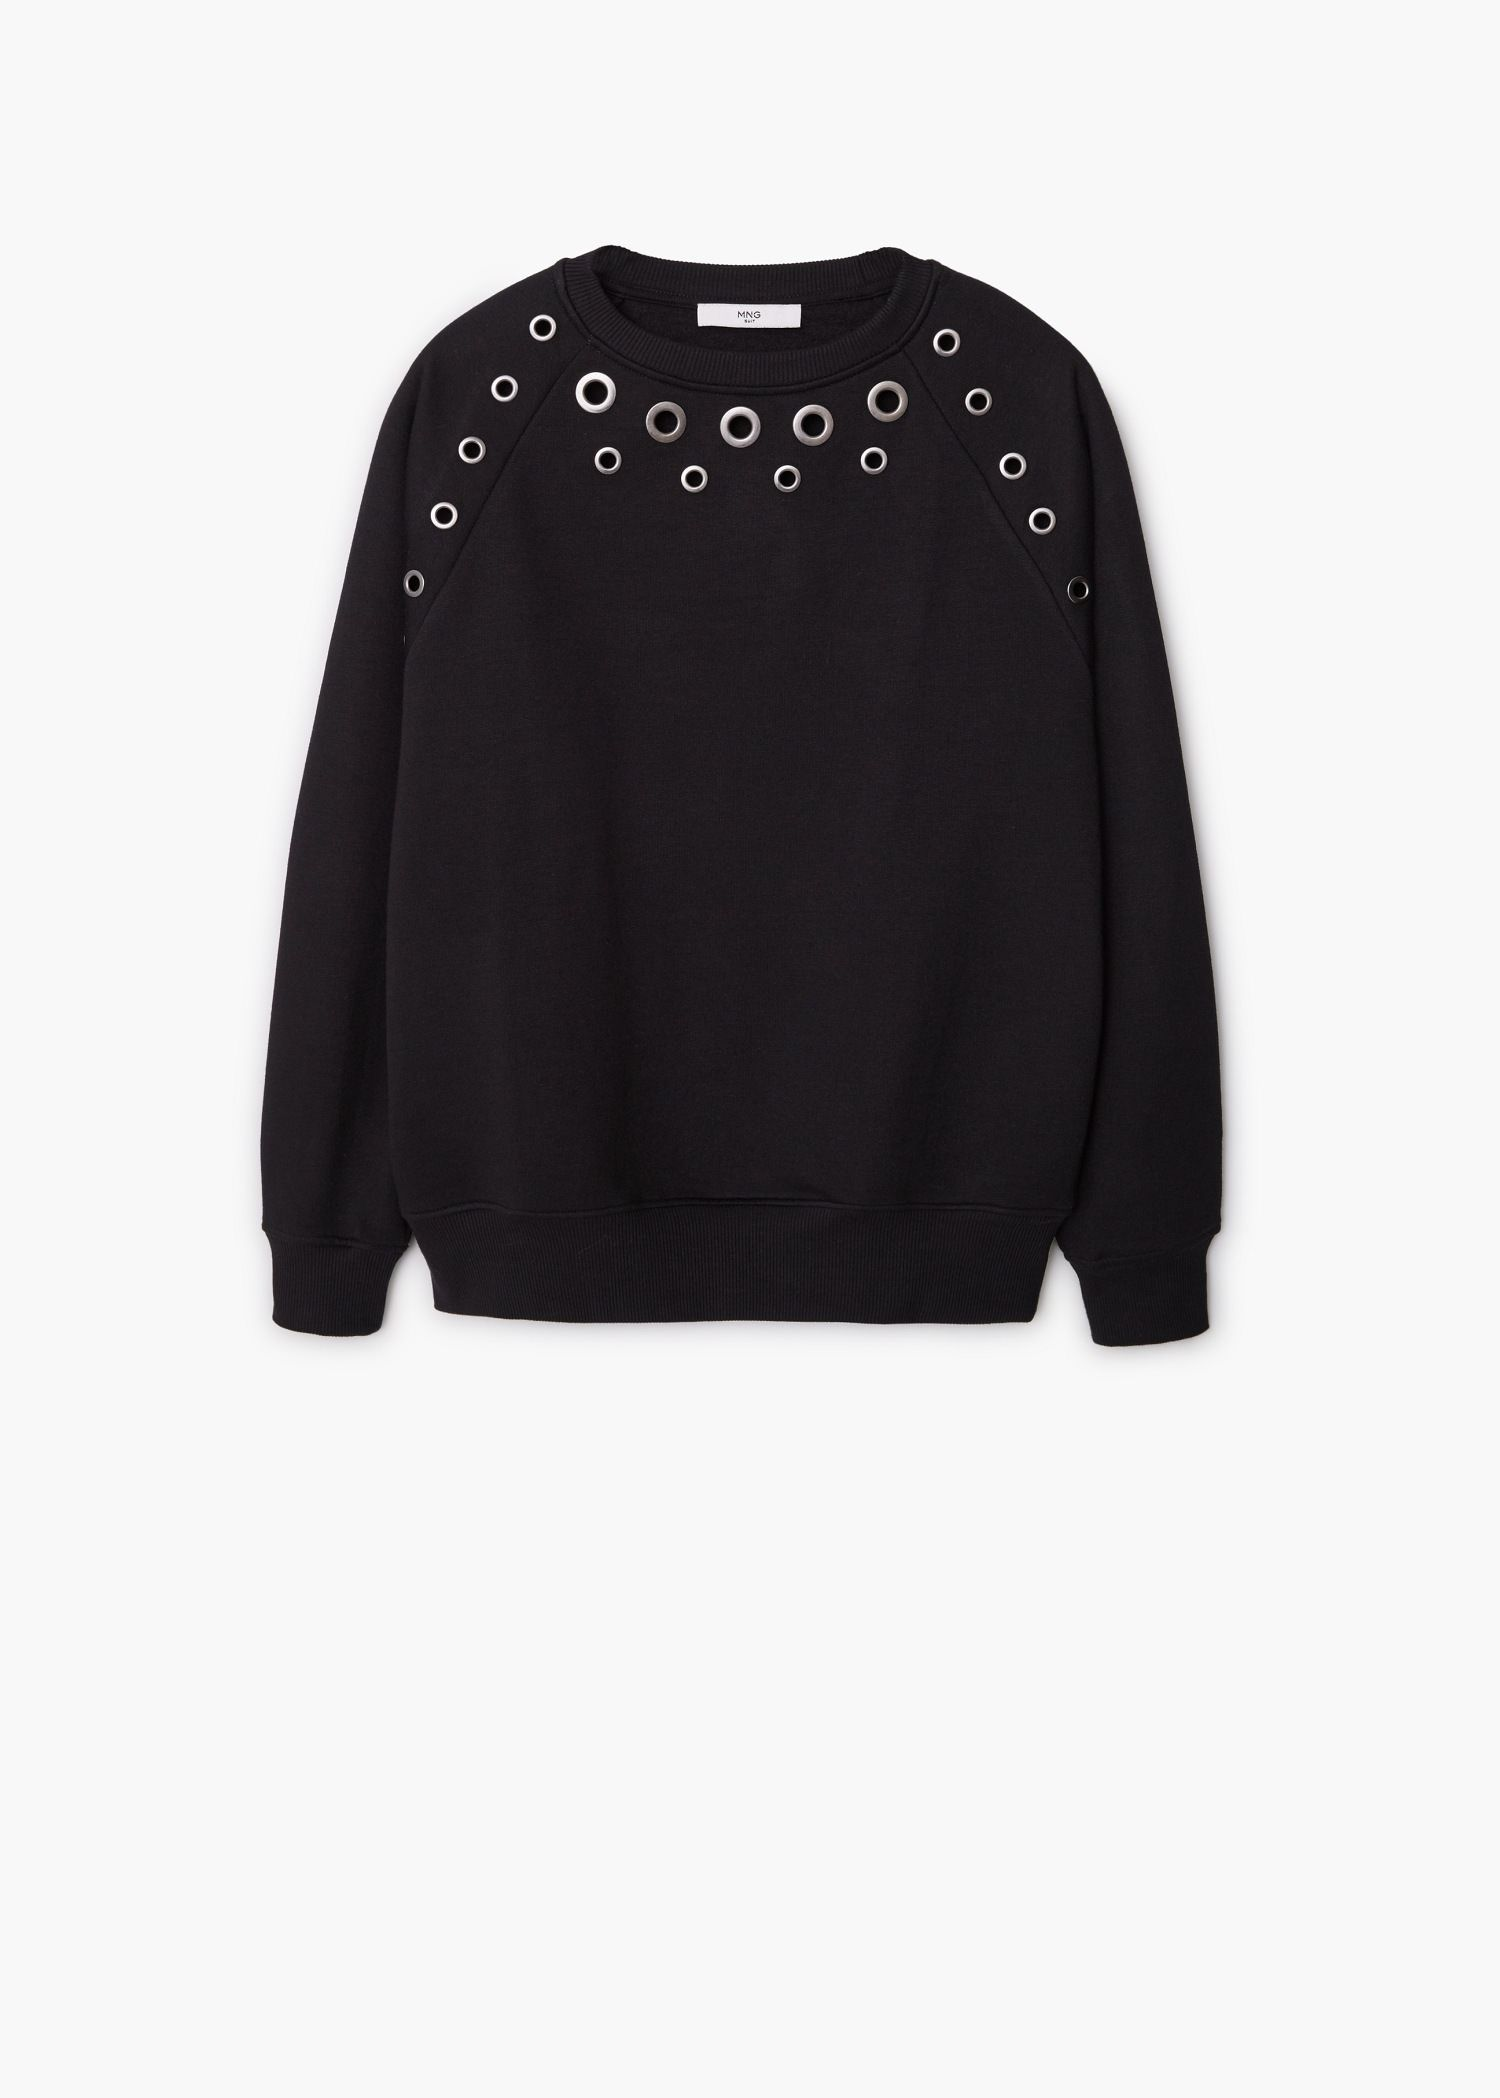 5c995d855b6 Studded sweatshirt - Cardigans and sweaters for Women